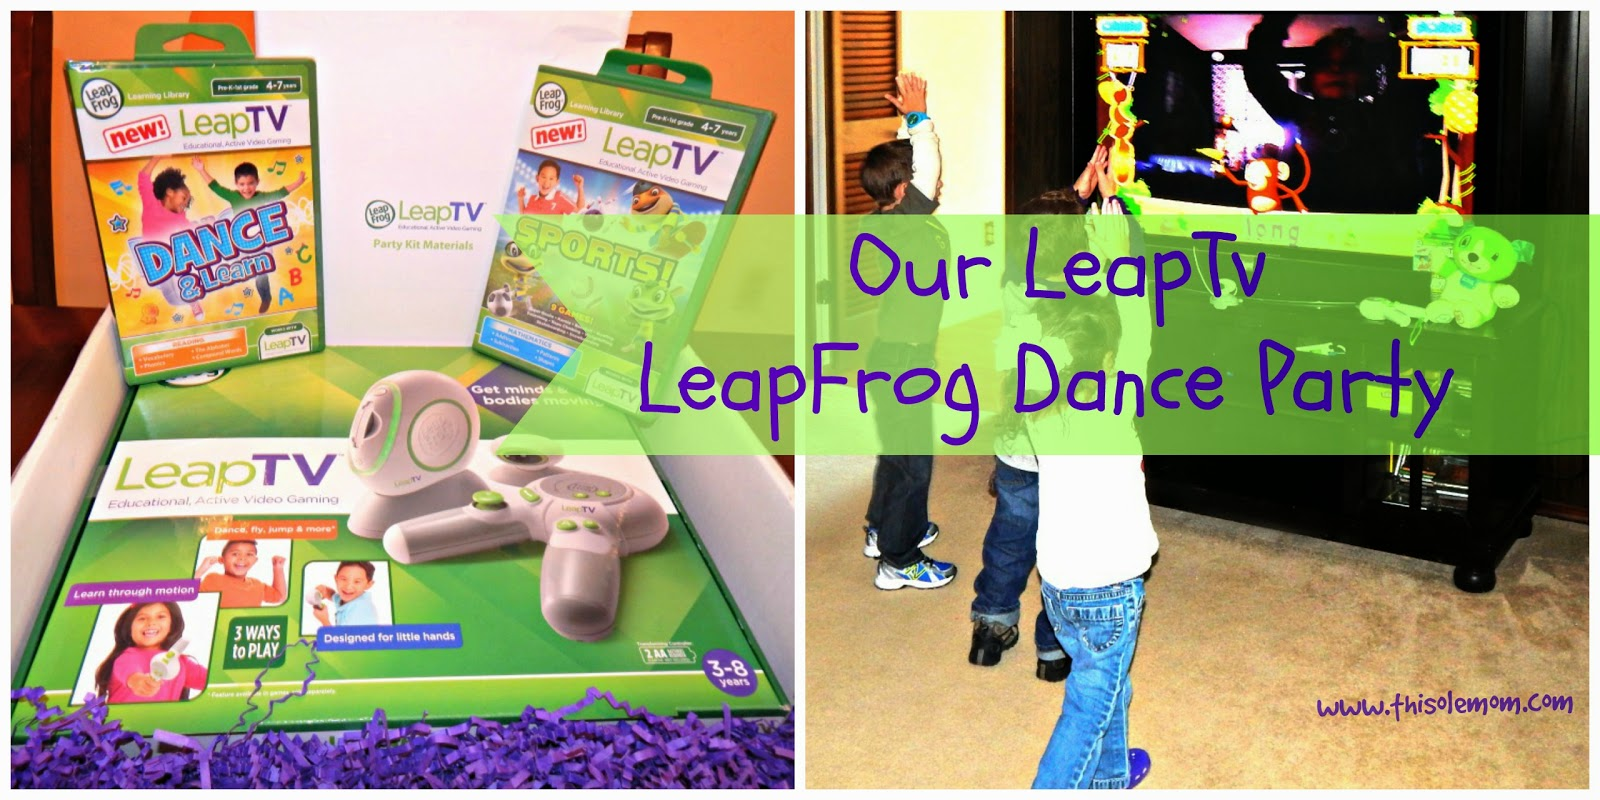 Mommy Parties, LeapTV, LeapFrog, Dance Party, Educational, Gaming system, Video Games